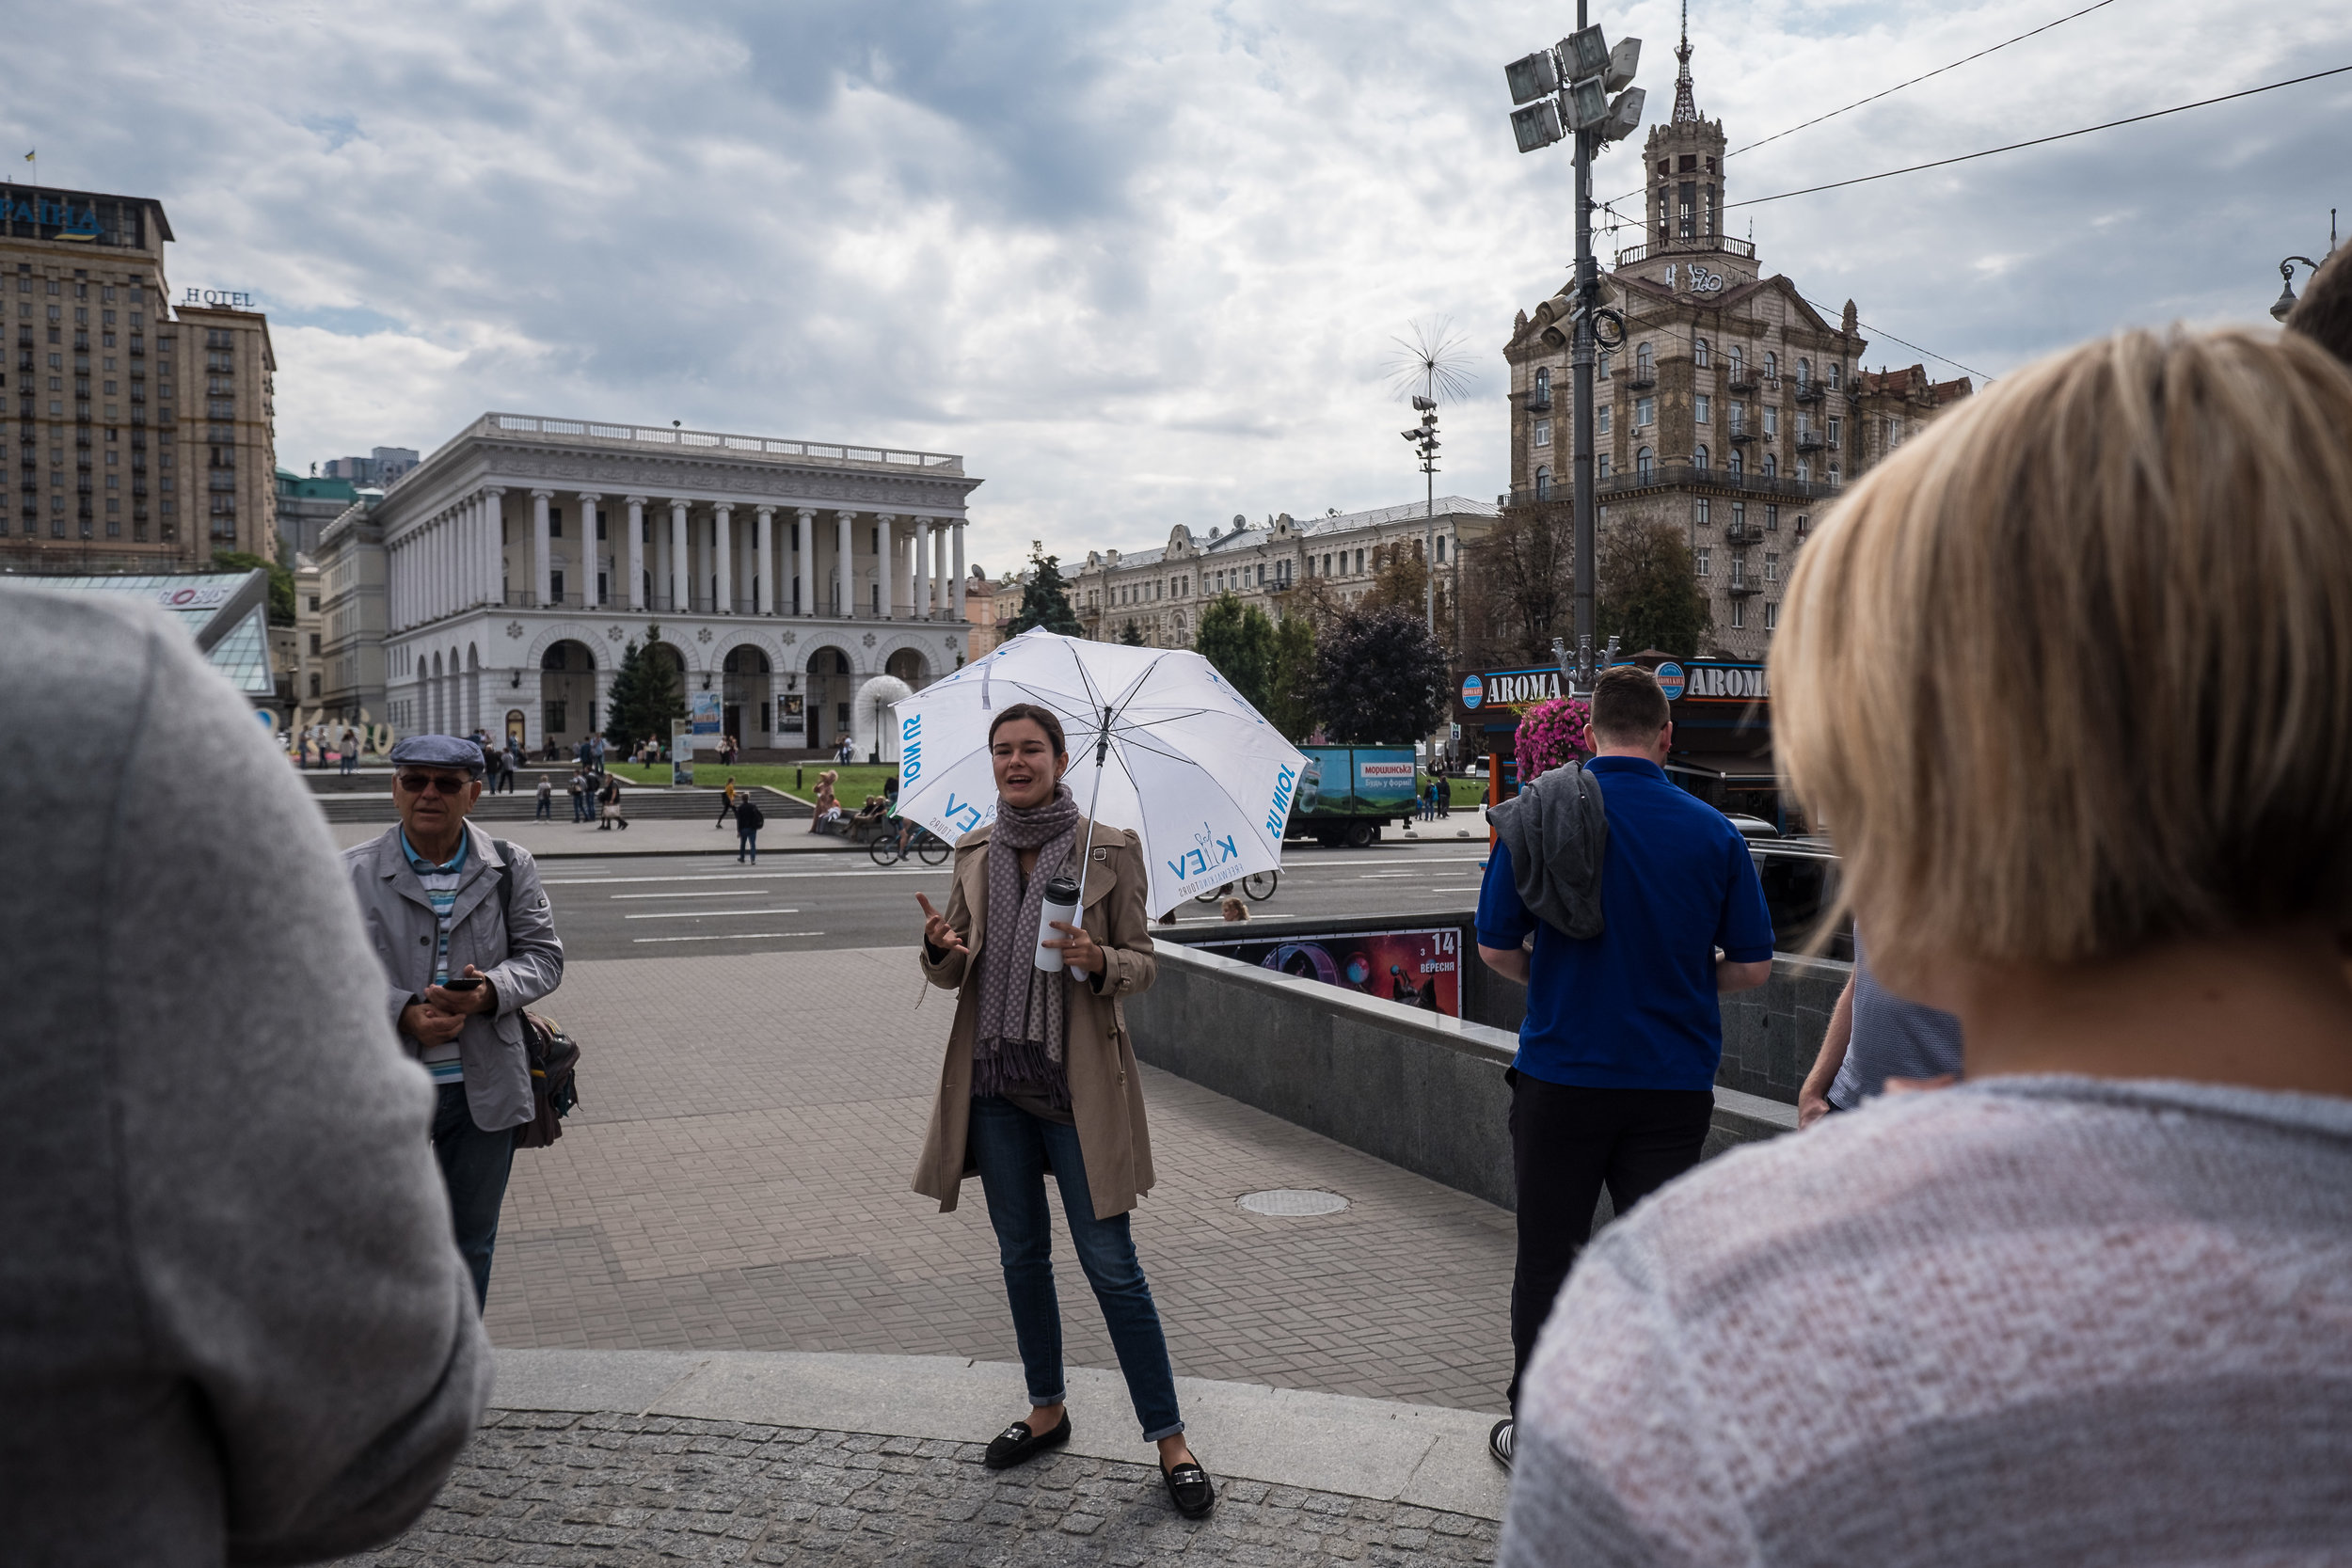 Marina, a guide for daily free walking tours, explains Kiev's history